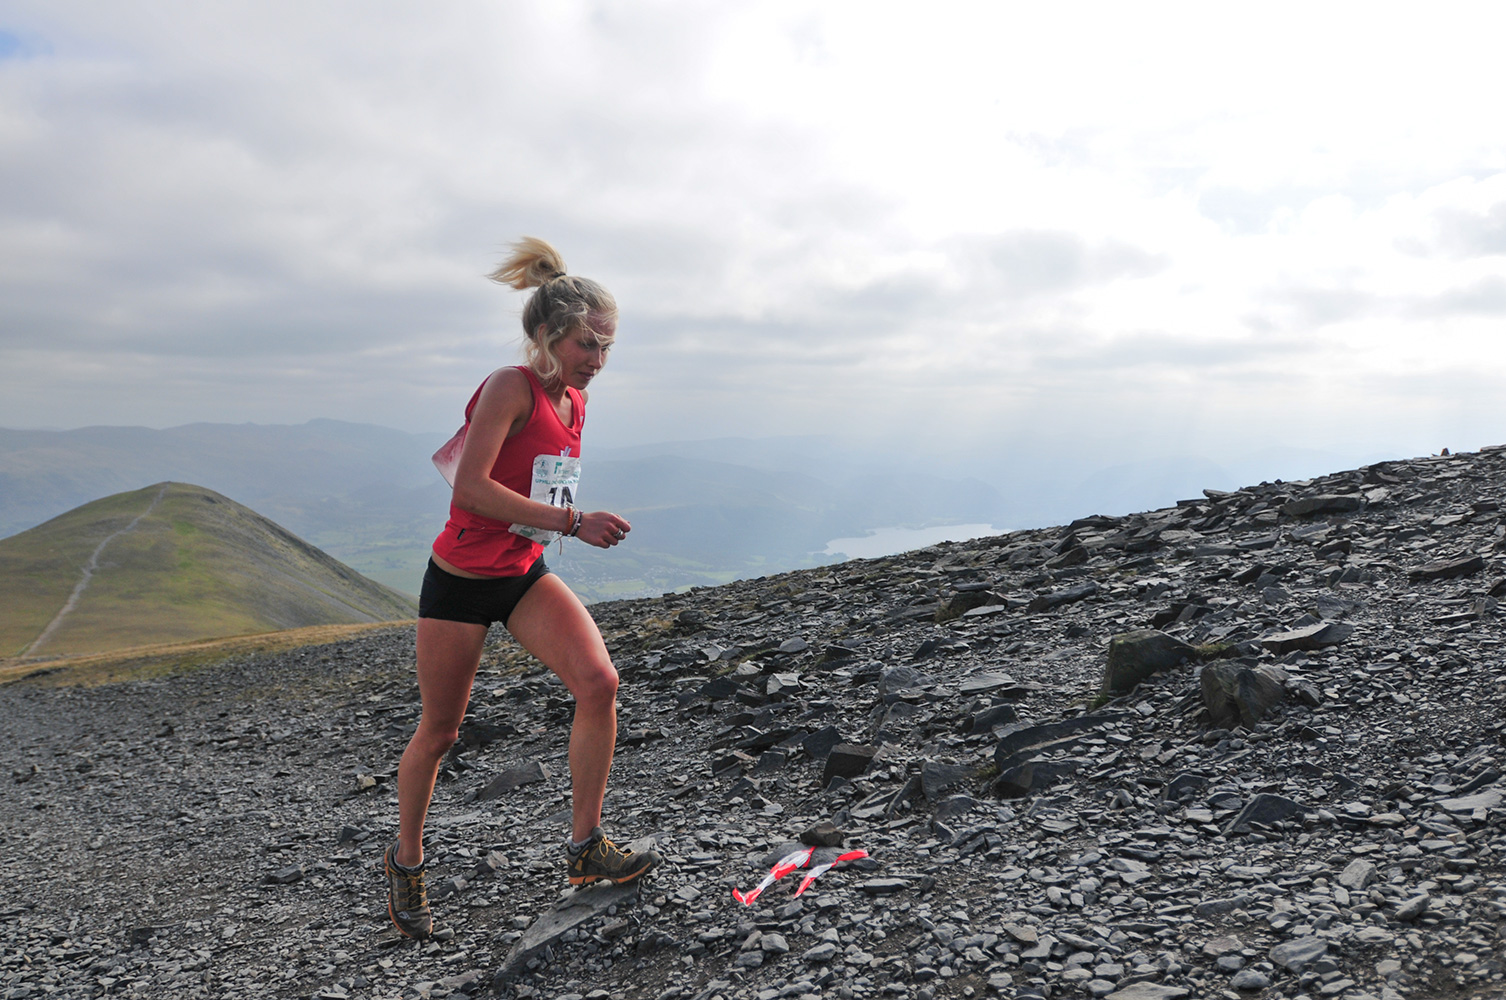 September 2009, Keswick, CumbriaGina Paletta running for Wales in the women's up-hill mountain race.